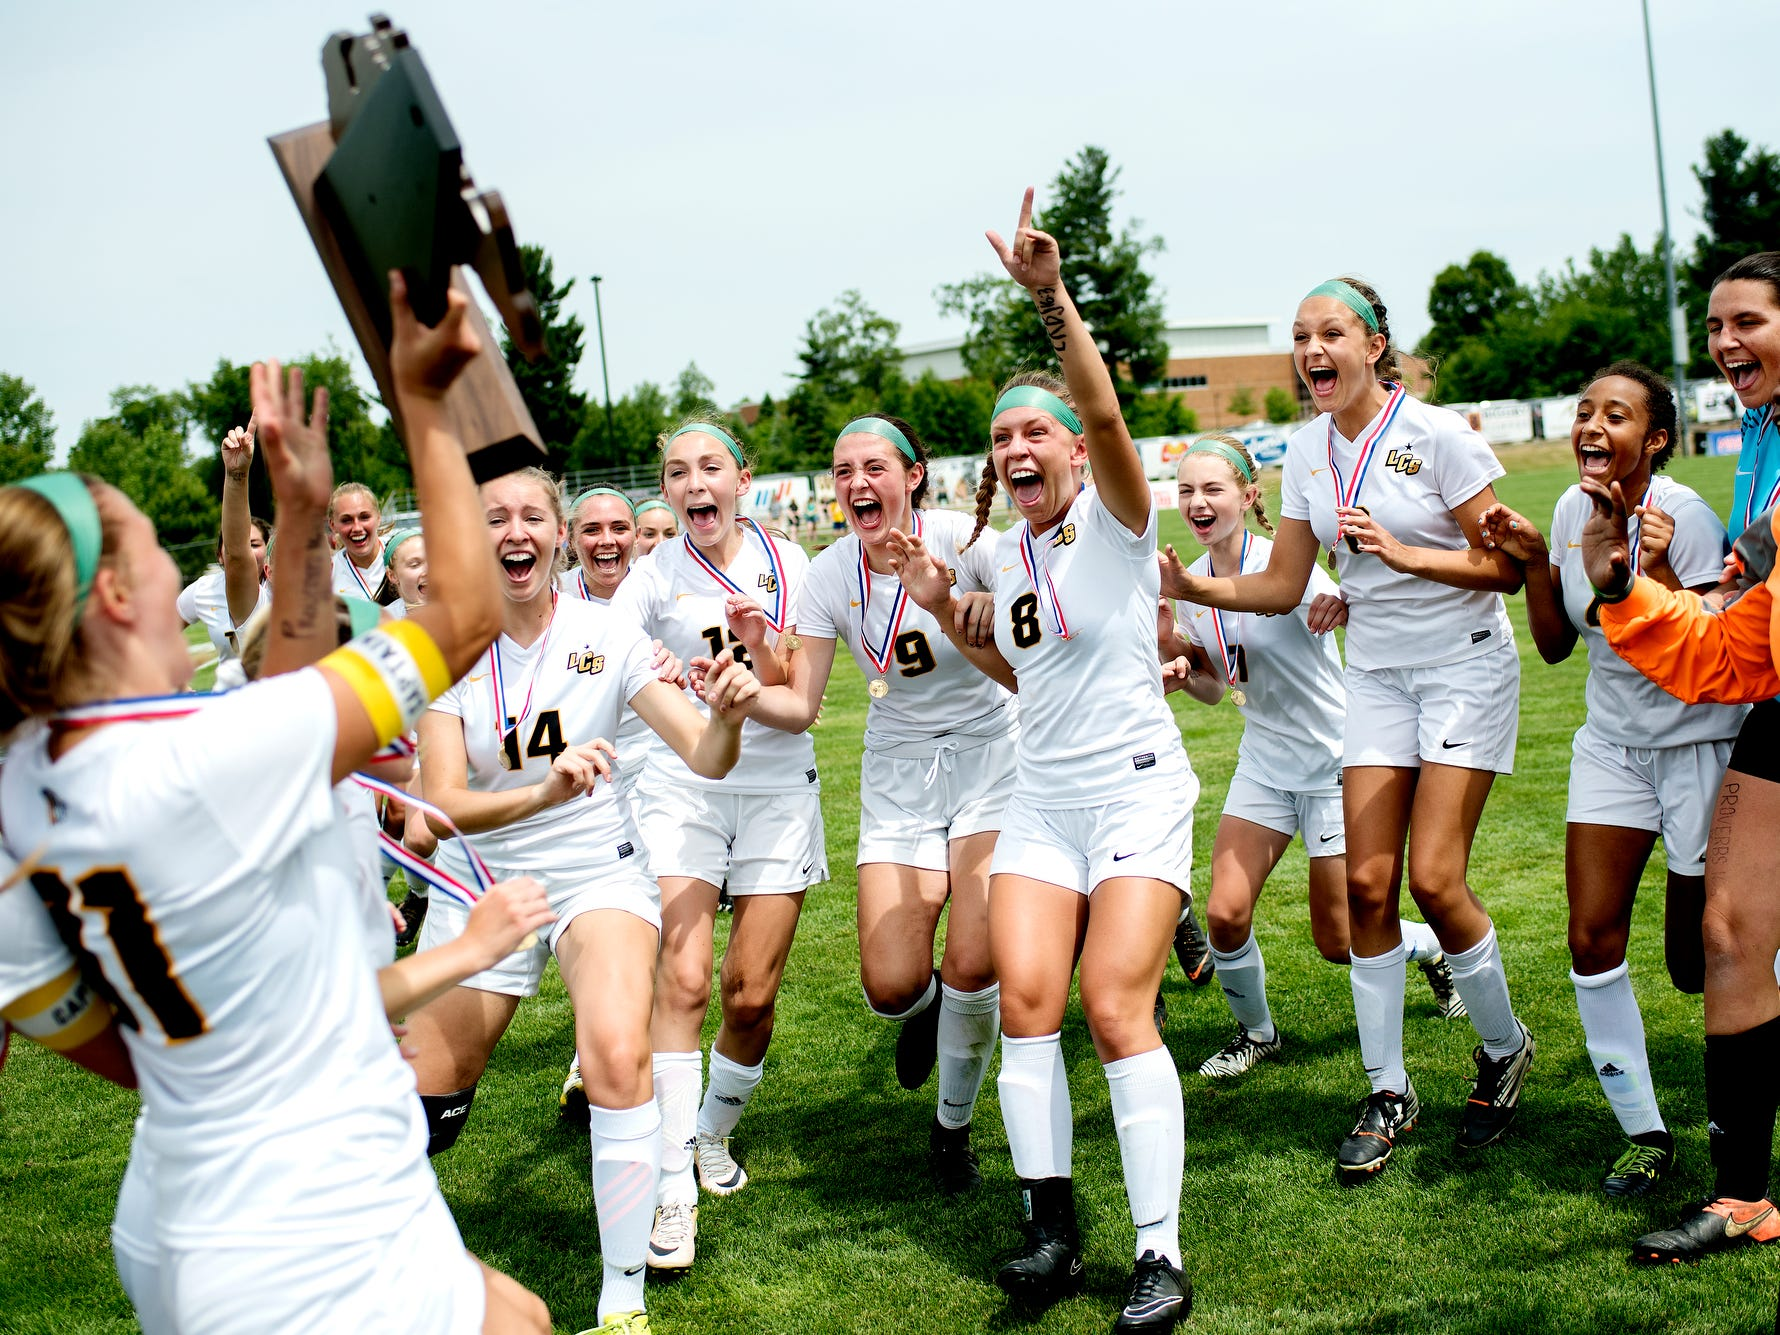 Lansing Christian's Kasey Jamieson, left, presents the Division 4 championship trophy to the team as they celebrate their win on Friday, June 15, 2018, at Williamston High School. Lansing Christian won the Division 4 girls soccer championship by defeating Kalamazoo Christian 1-0.